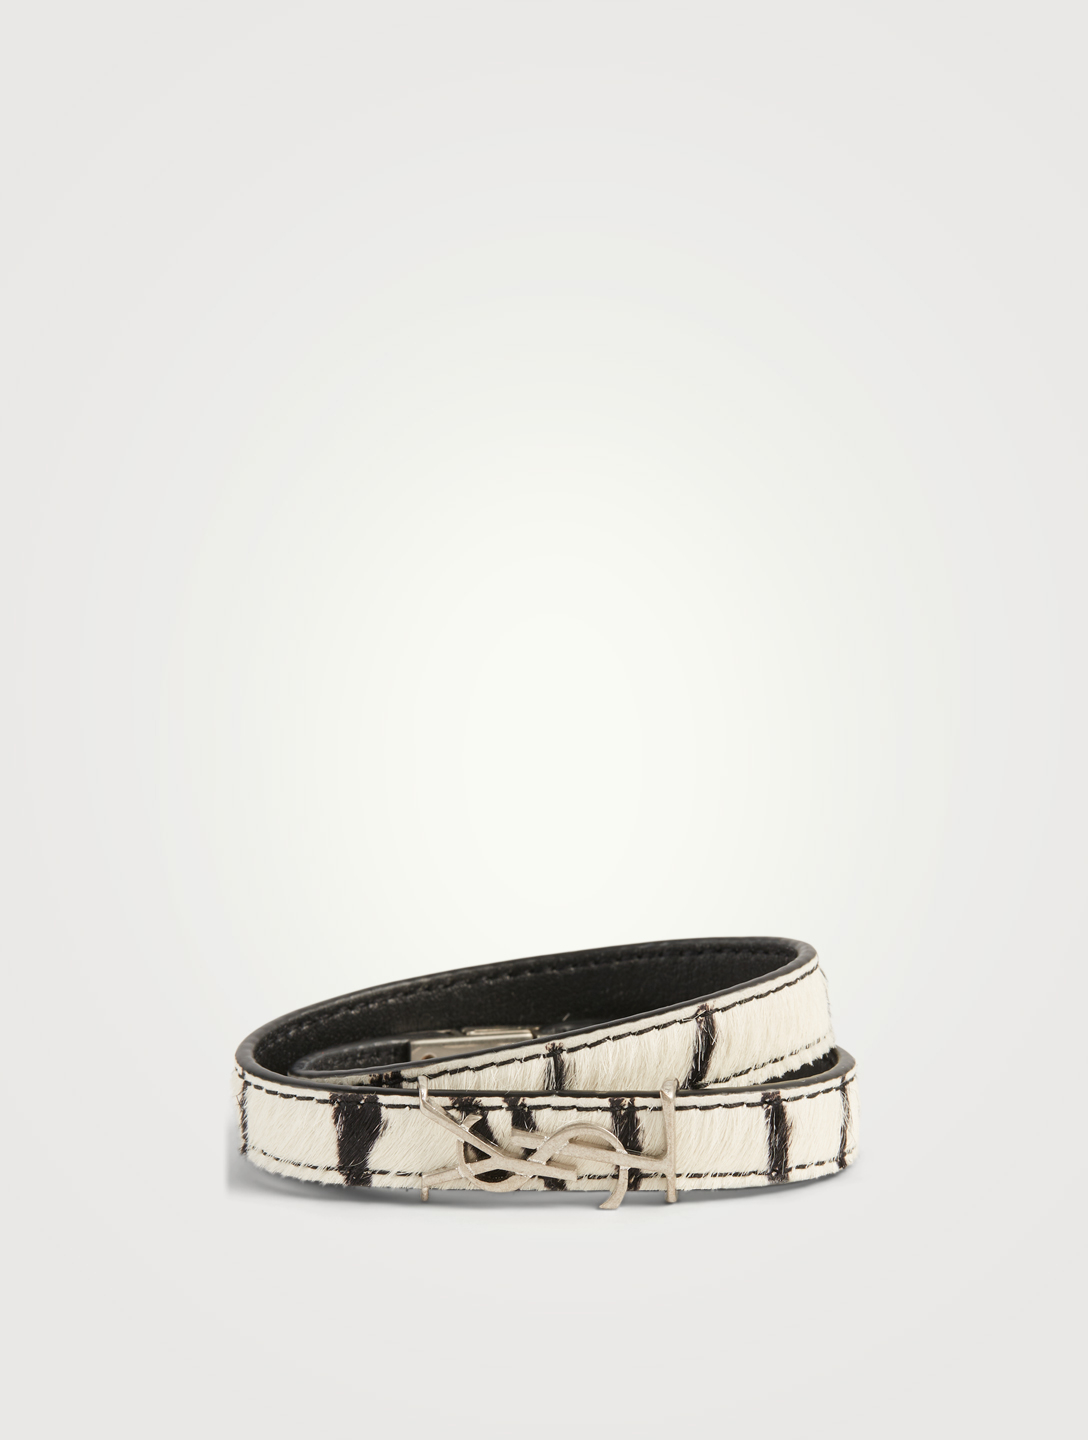 SAINT LAURENT Opyum YSL Calf Hair Wrap Bracelet In Zebra Print Women's Black